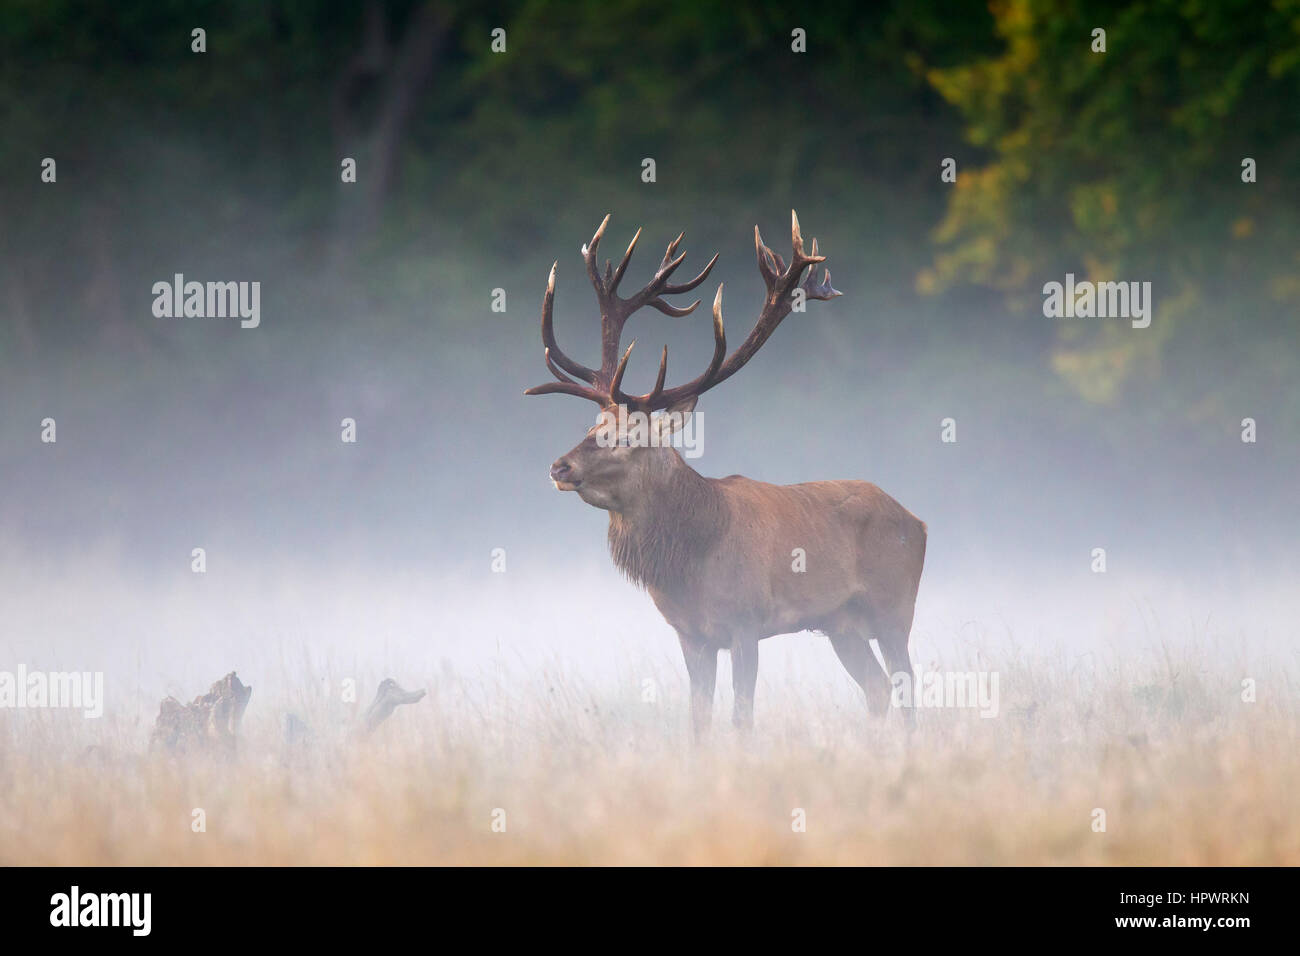 Red deer (Cervus elaphus) stag in grassland in the mist at forest's edge during the rut in autumn - Stock Image